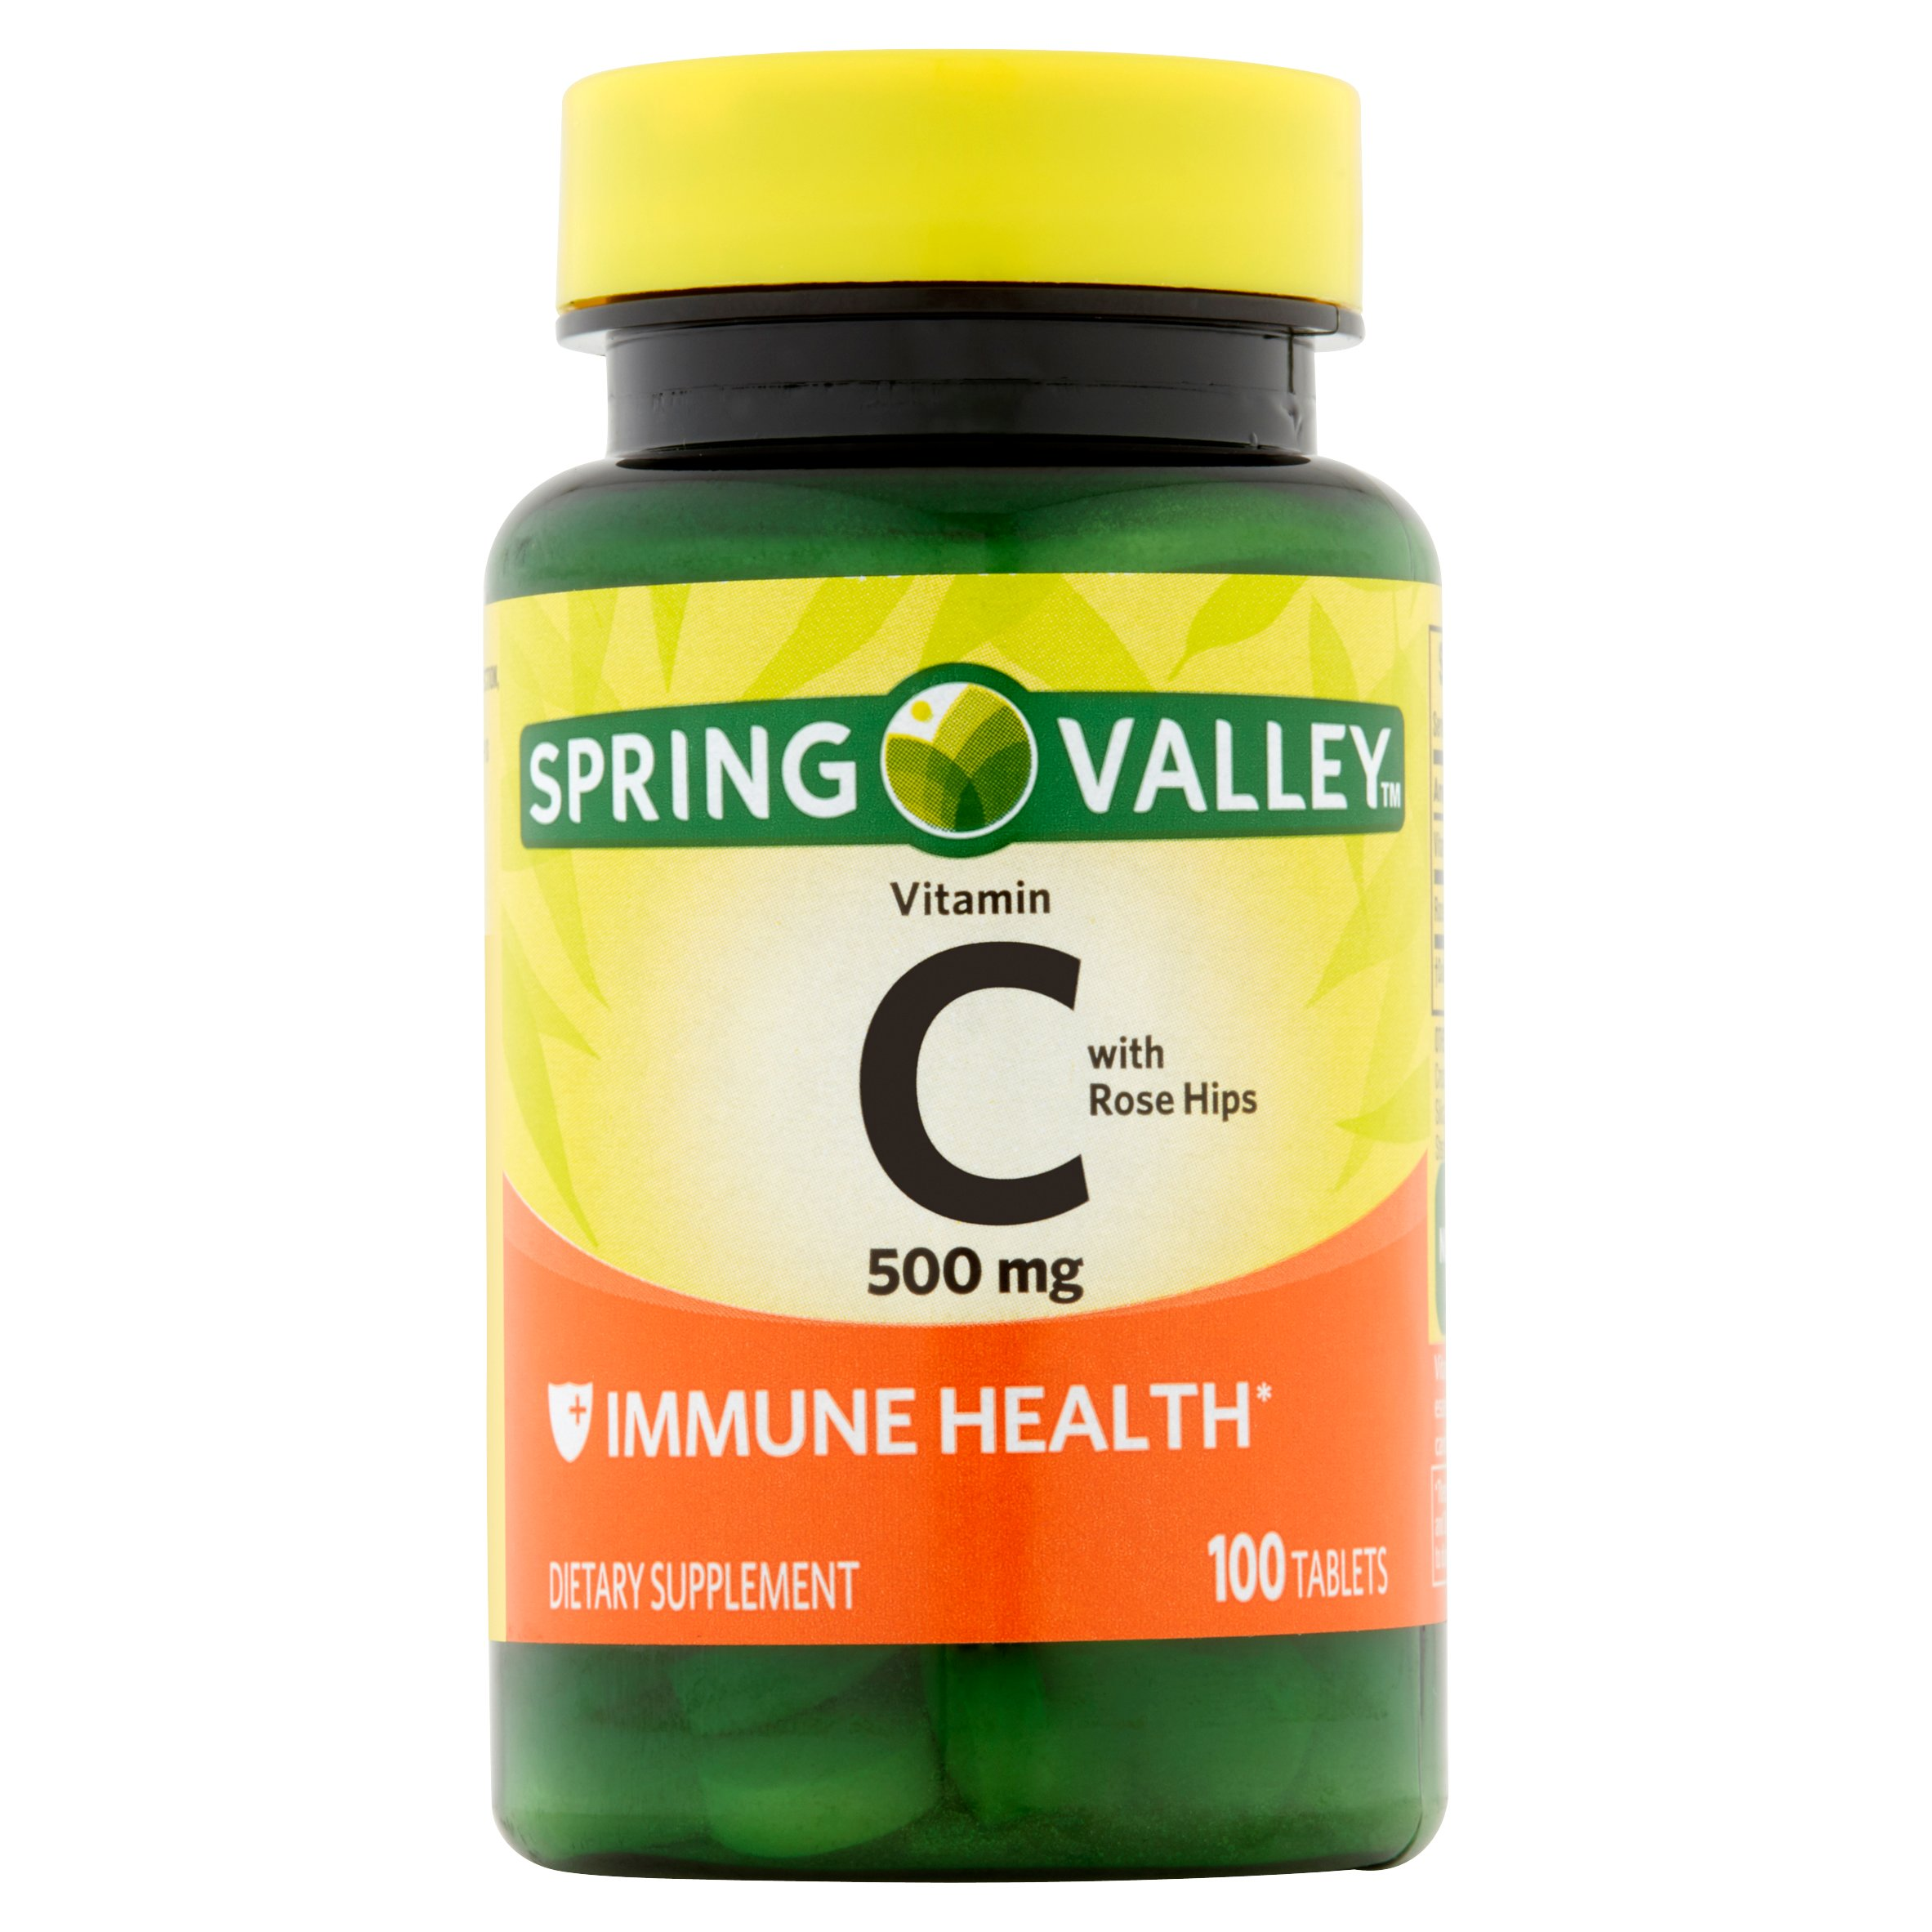 Spring Valley Vitamin C Tablets, 500 mg, 100 Ct